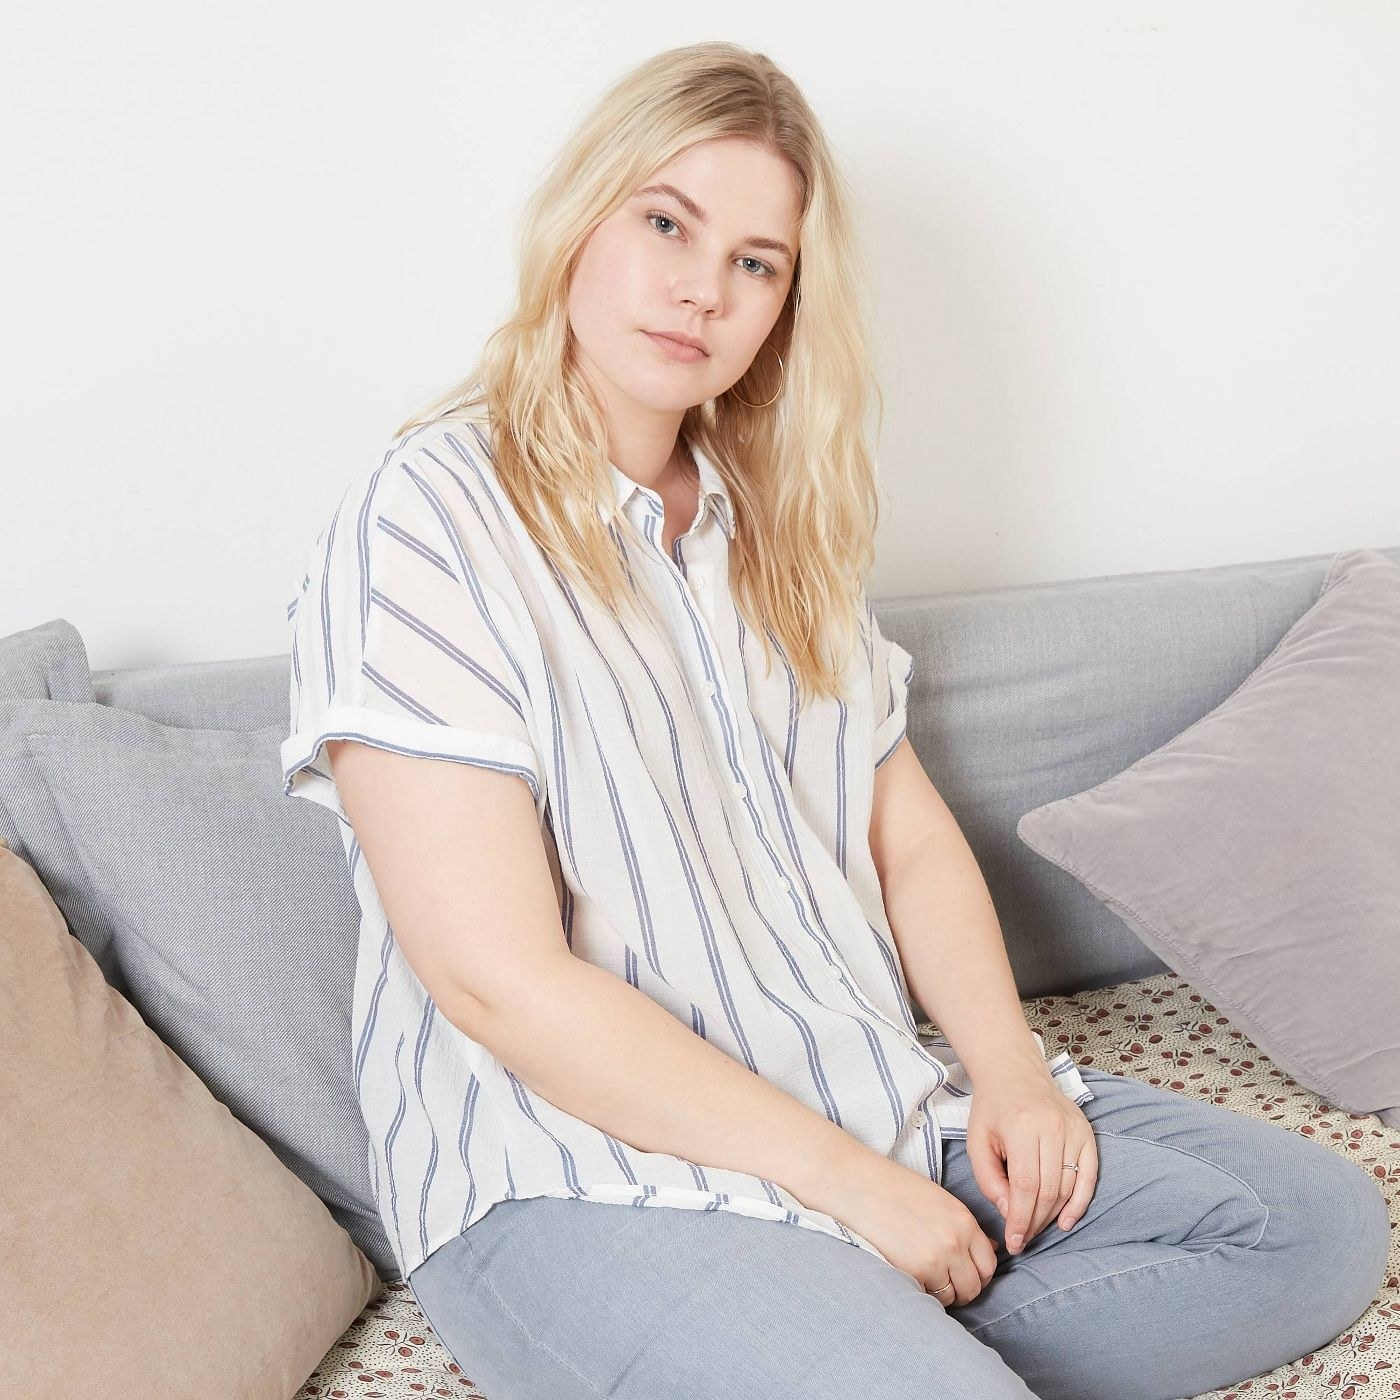 A model in the white blouse with blue stripes